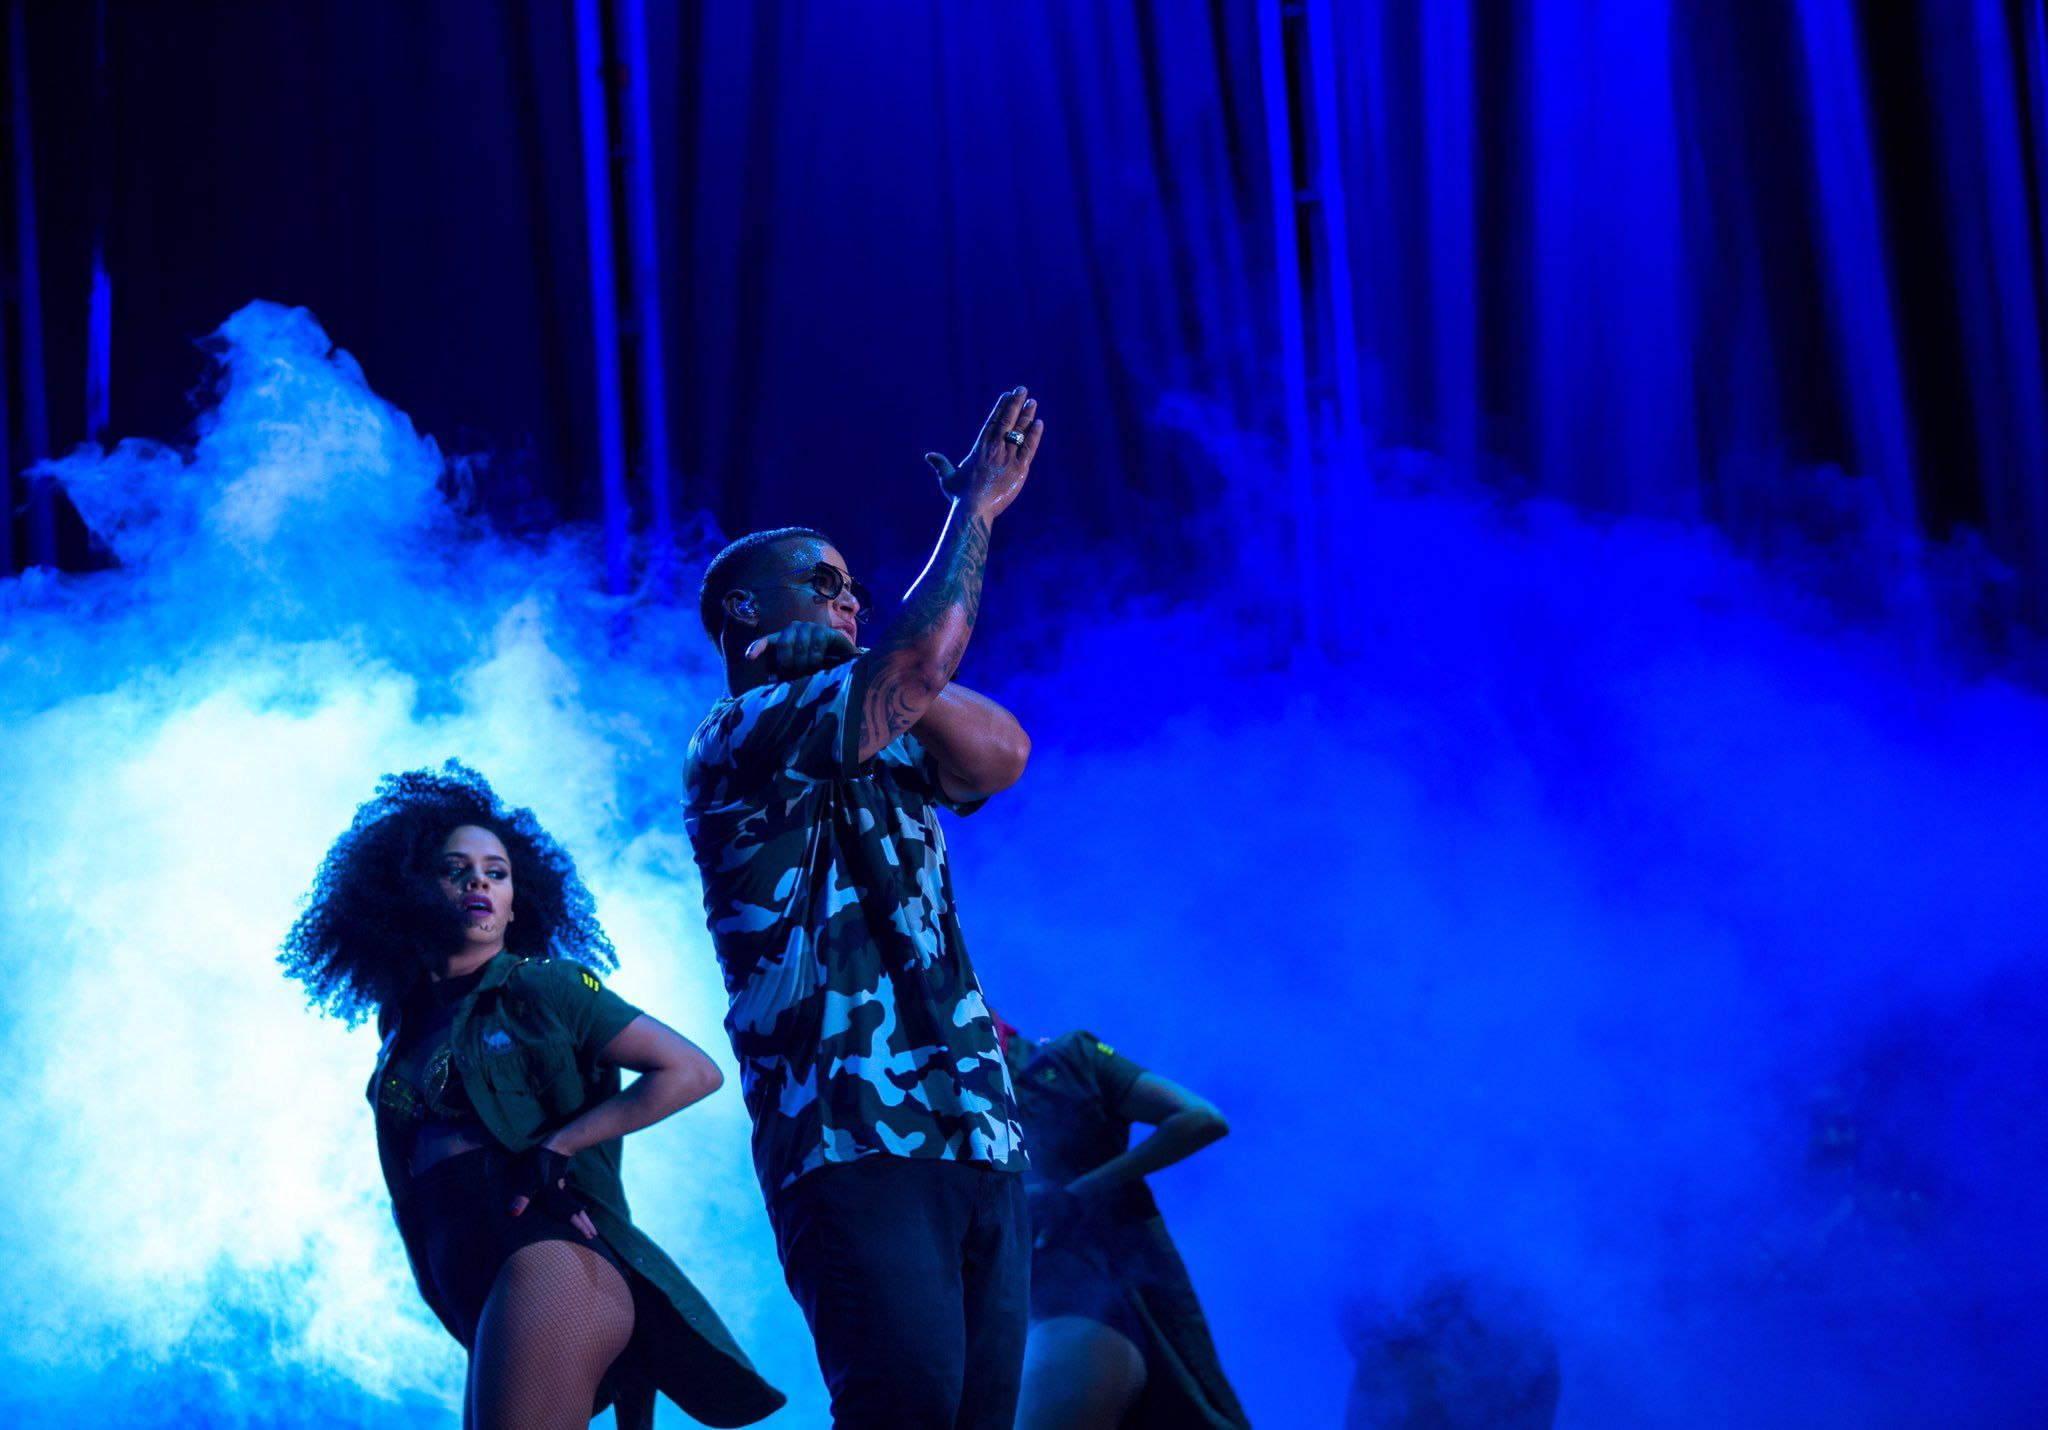 daddy_yankee : A otro nivel la energía de #Montevideo ���� https://t.co/LofaoQOyrX | Twicsy - Twitter Picture Discovery